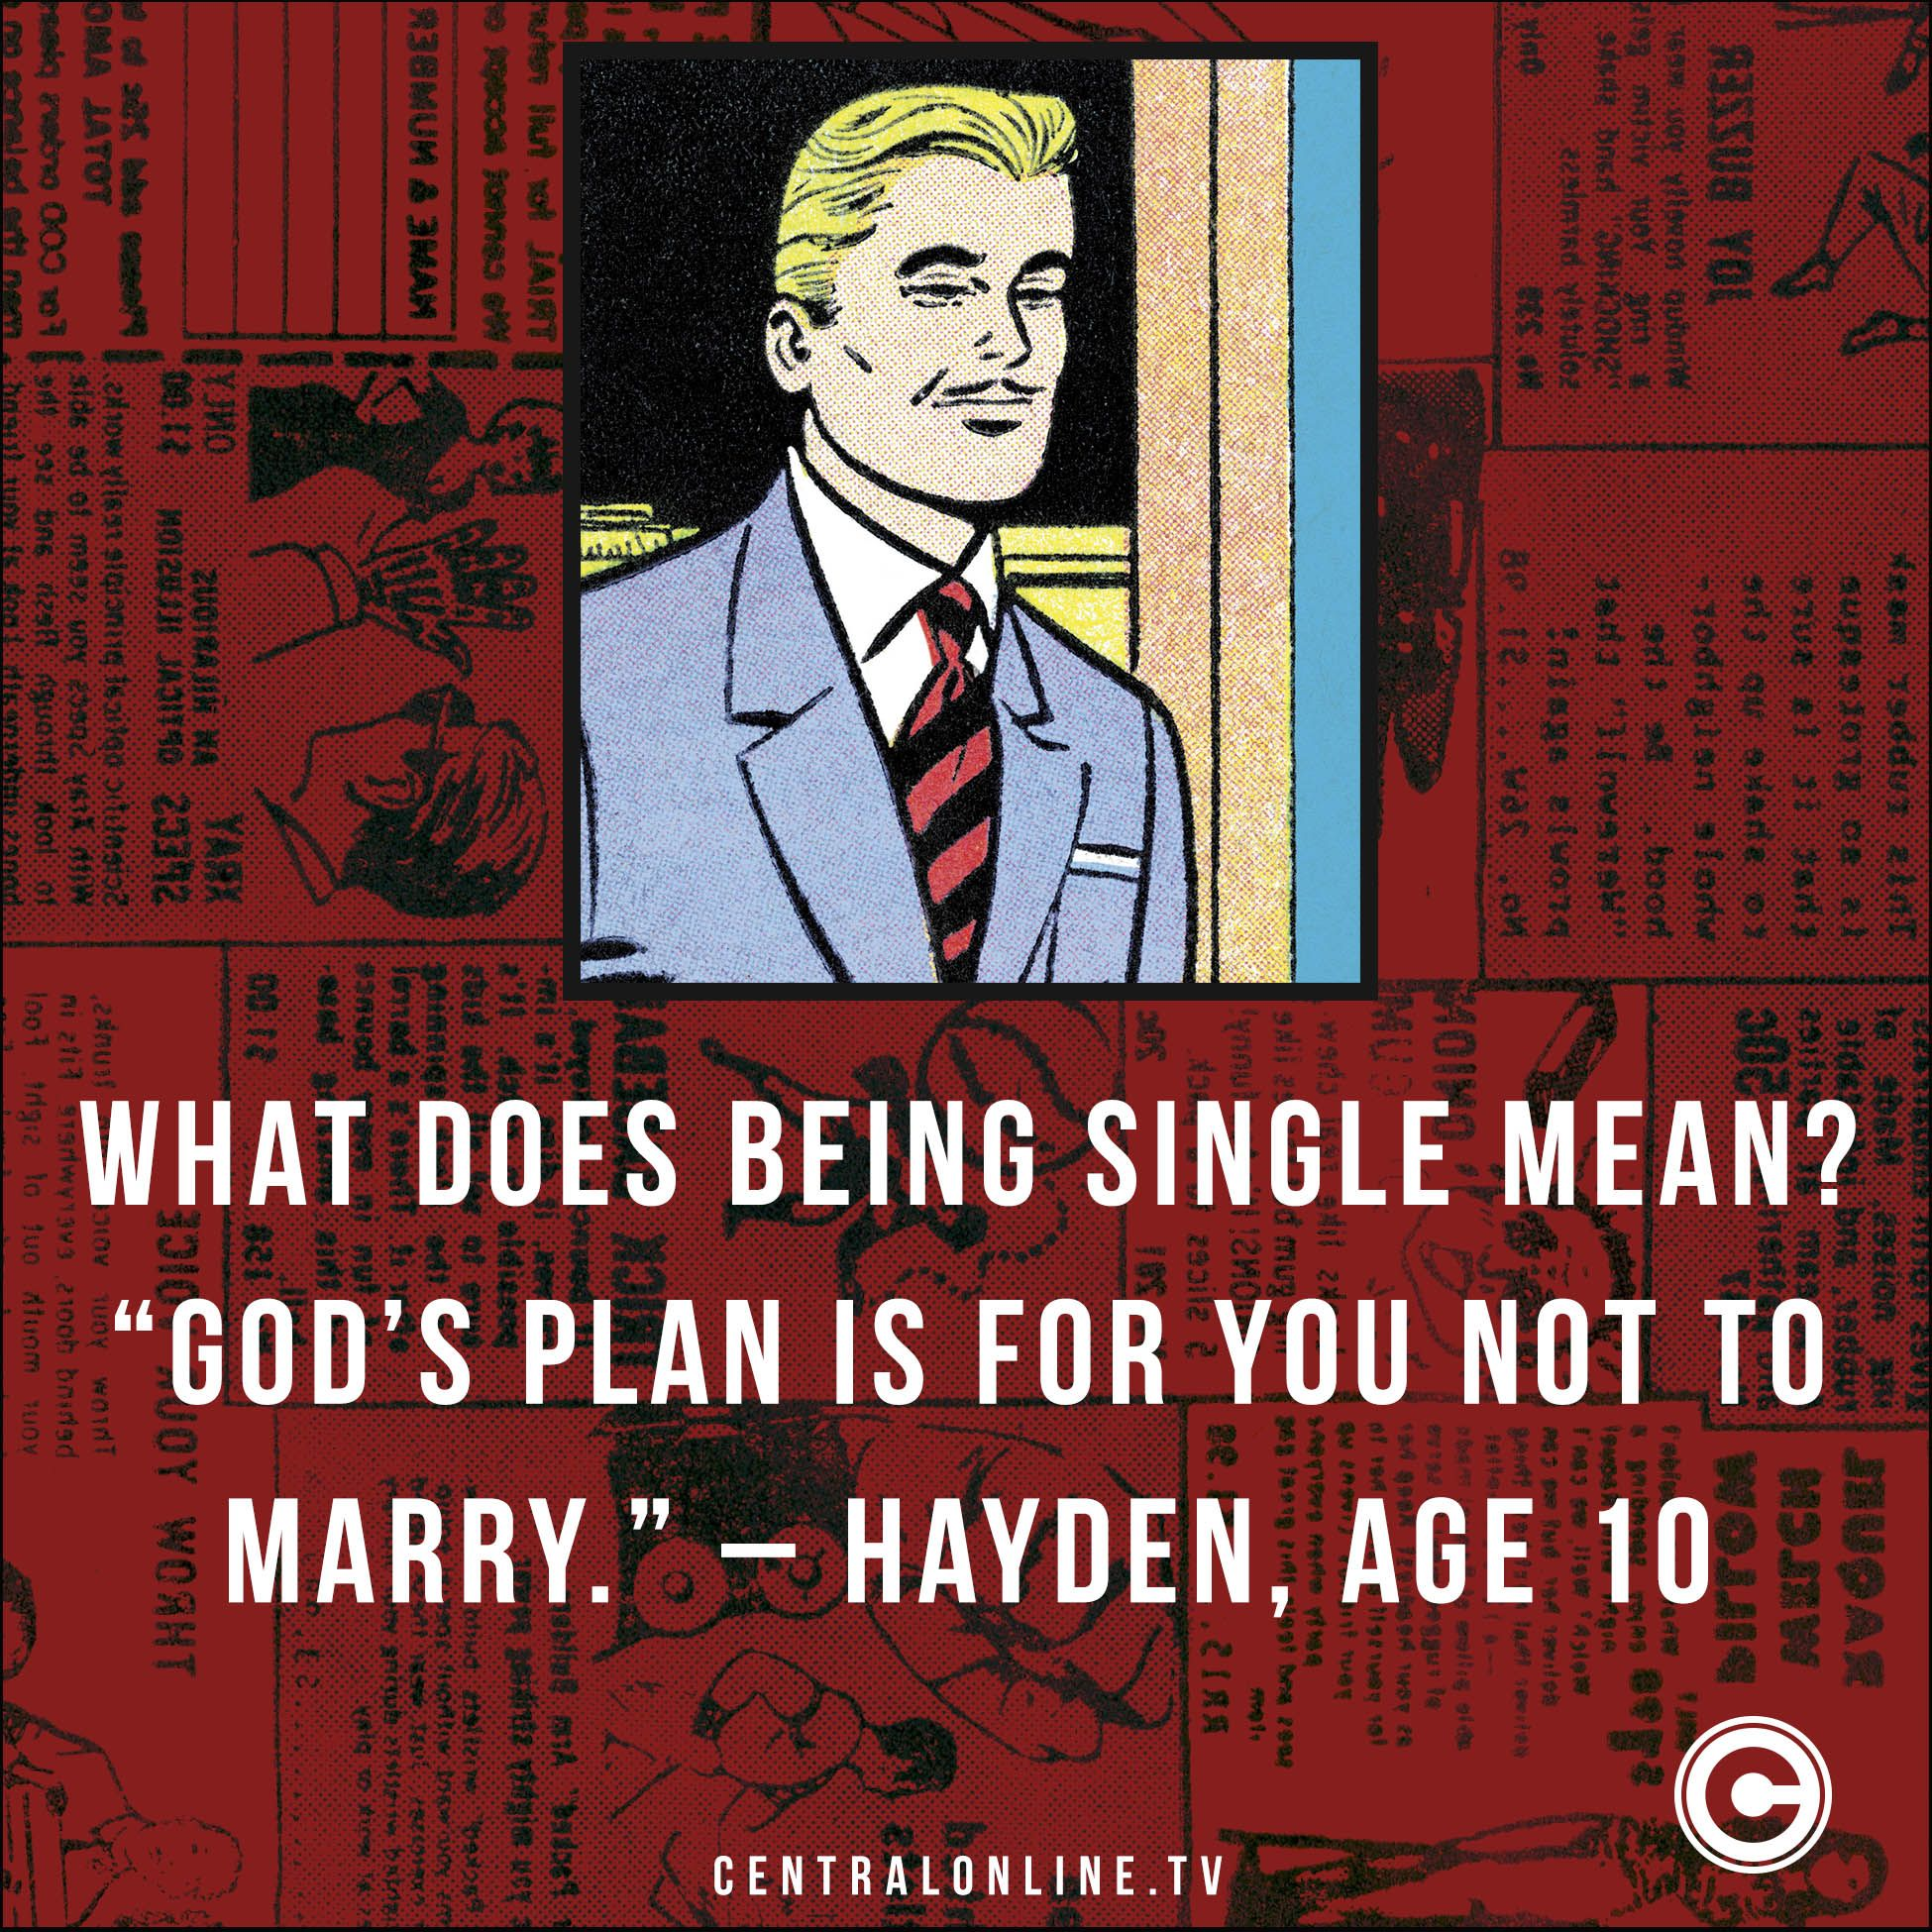 Single.Dating.Married. - New series